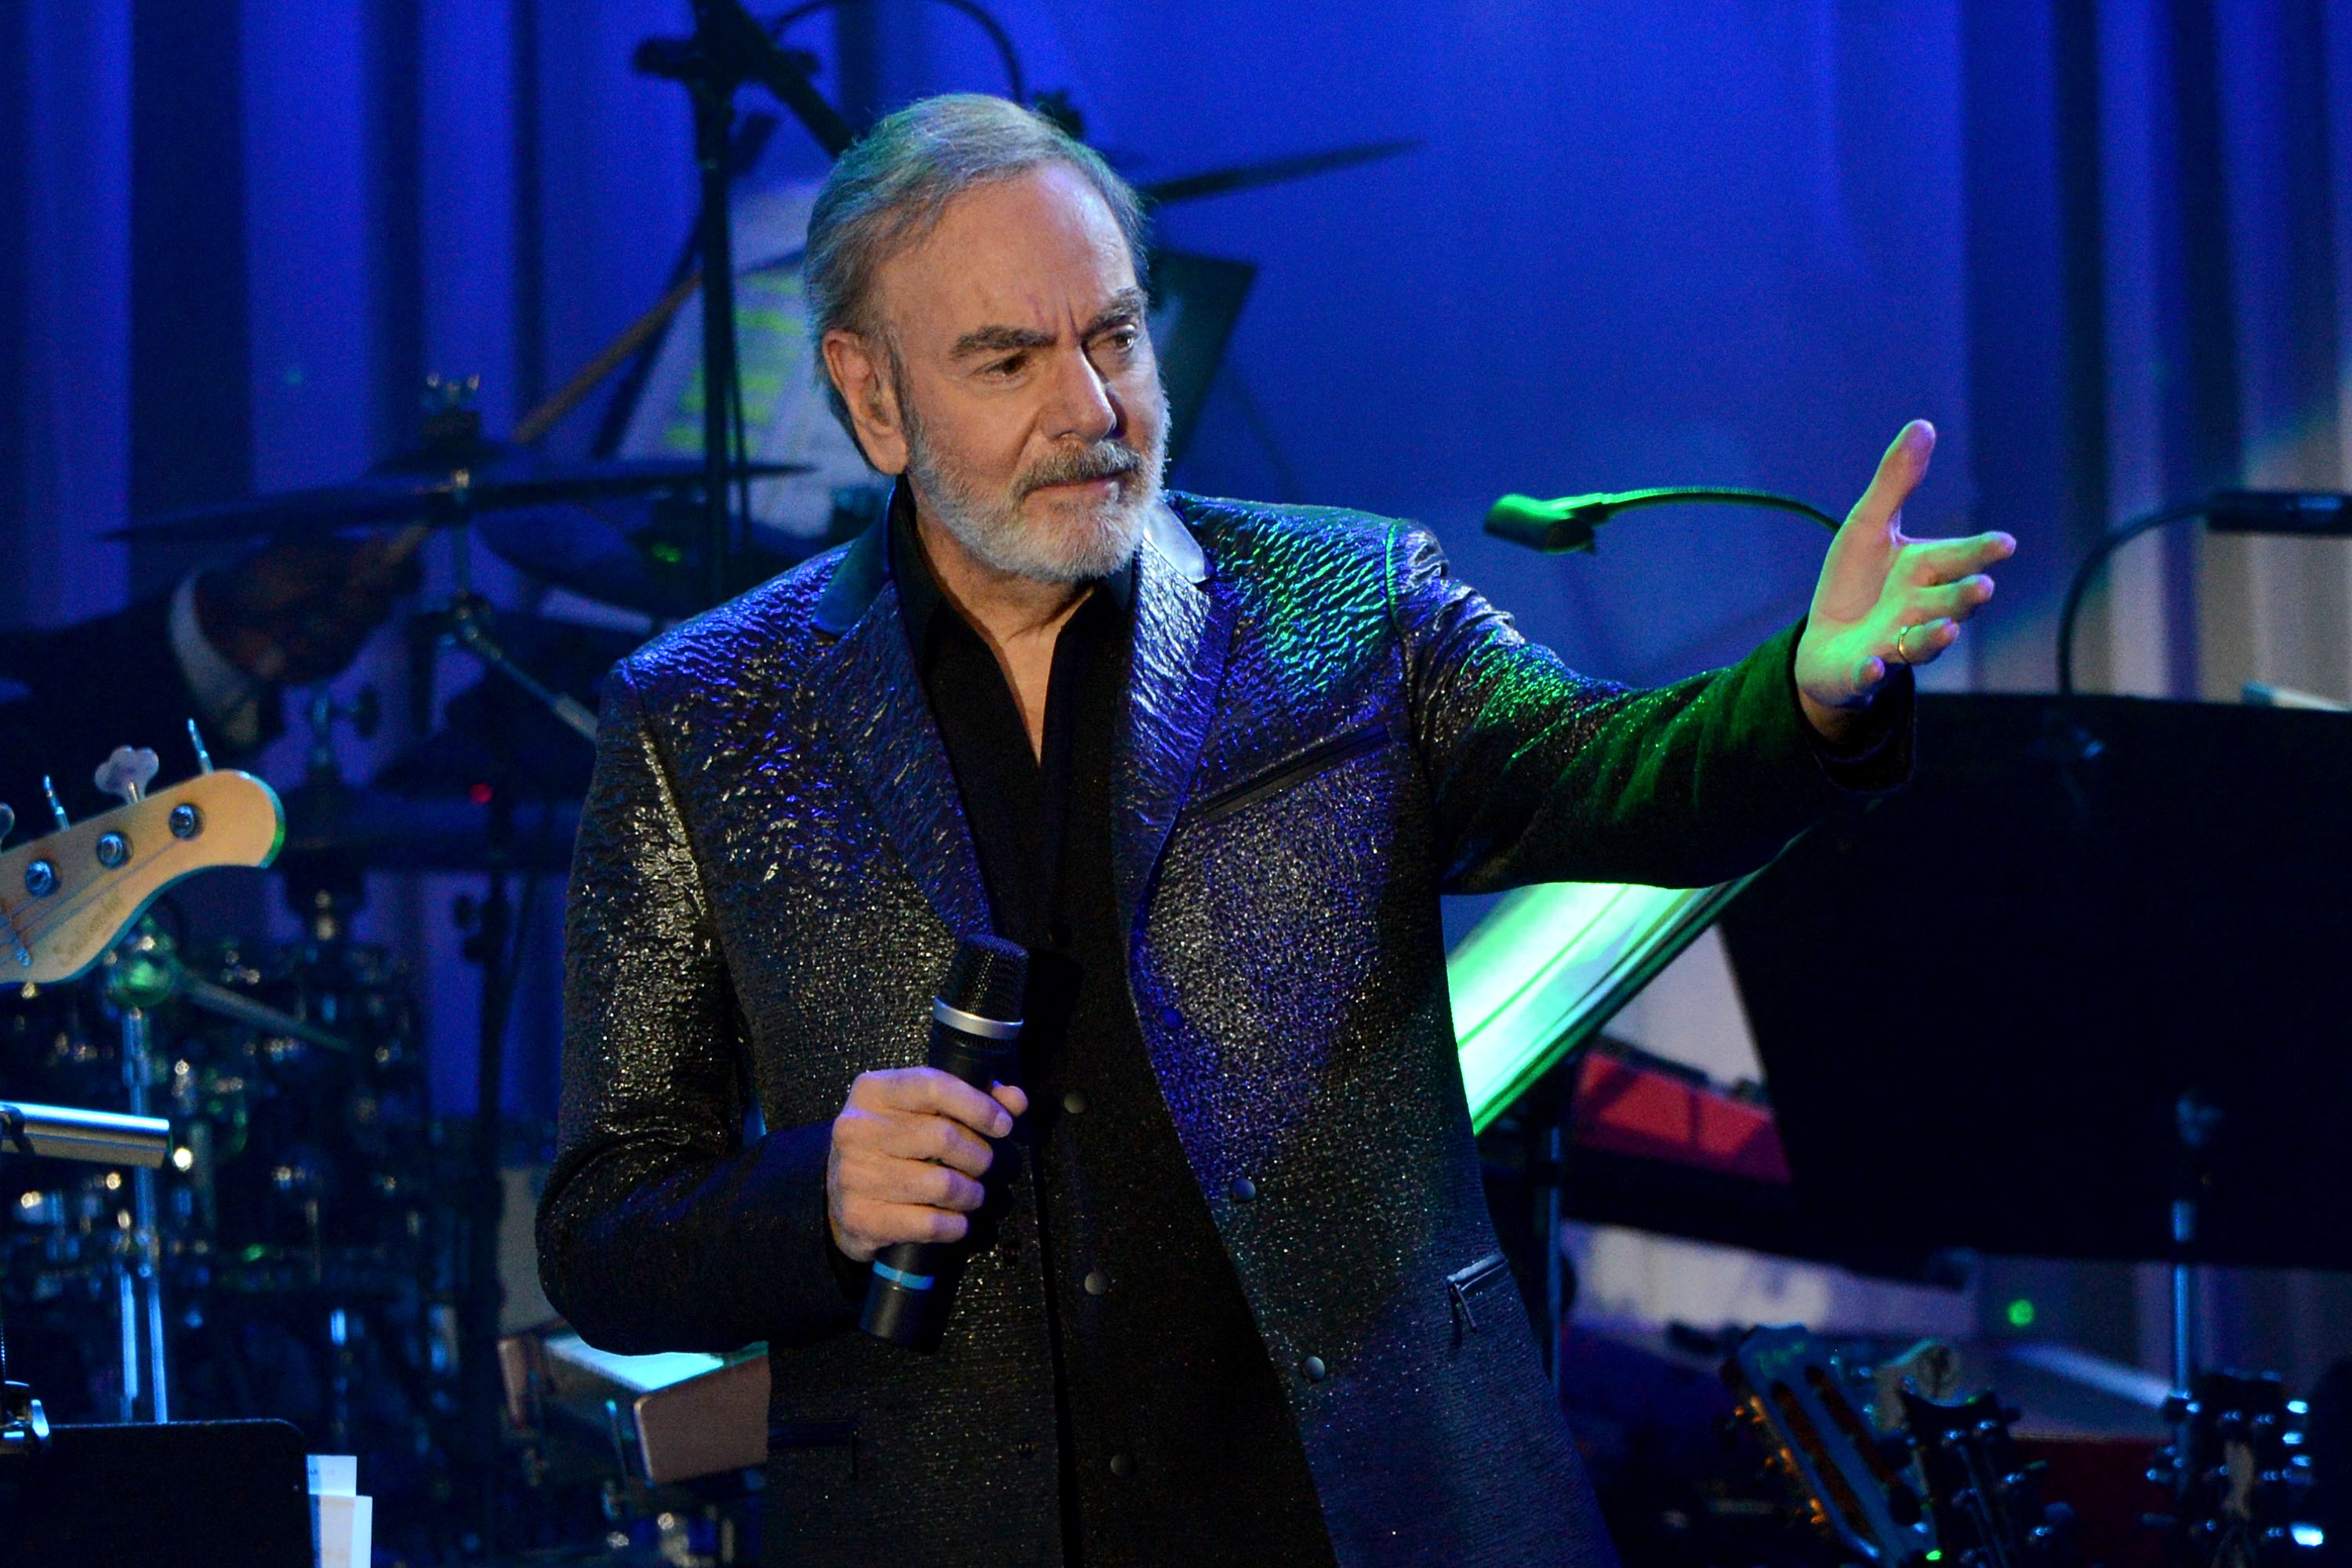 Neil Diamond performs onstage during the 2017 Pre-Grammy Gala and Salute to Industry Icons.